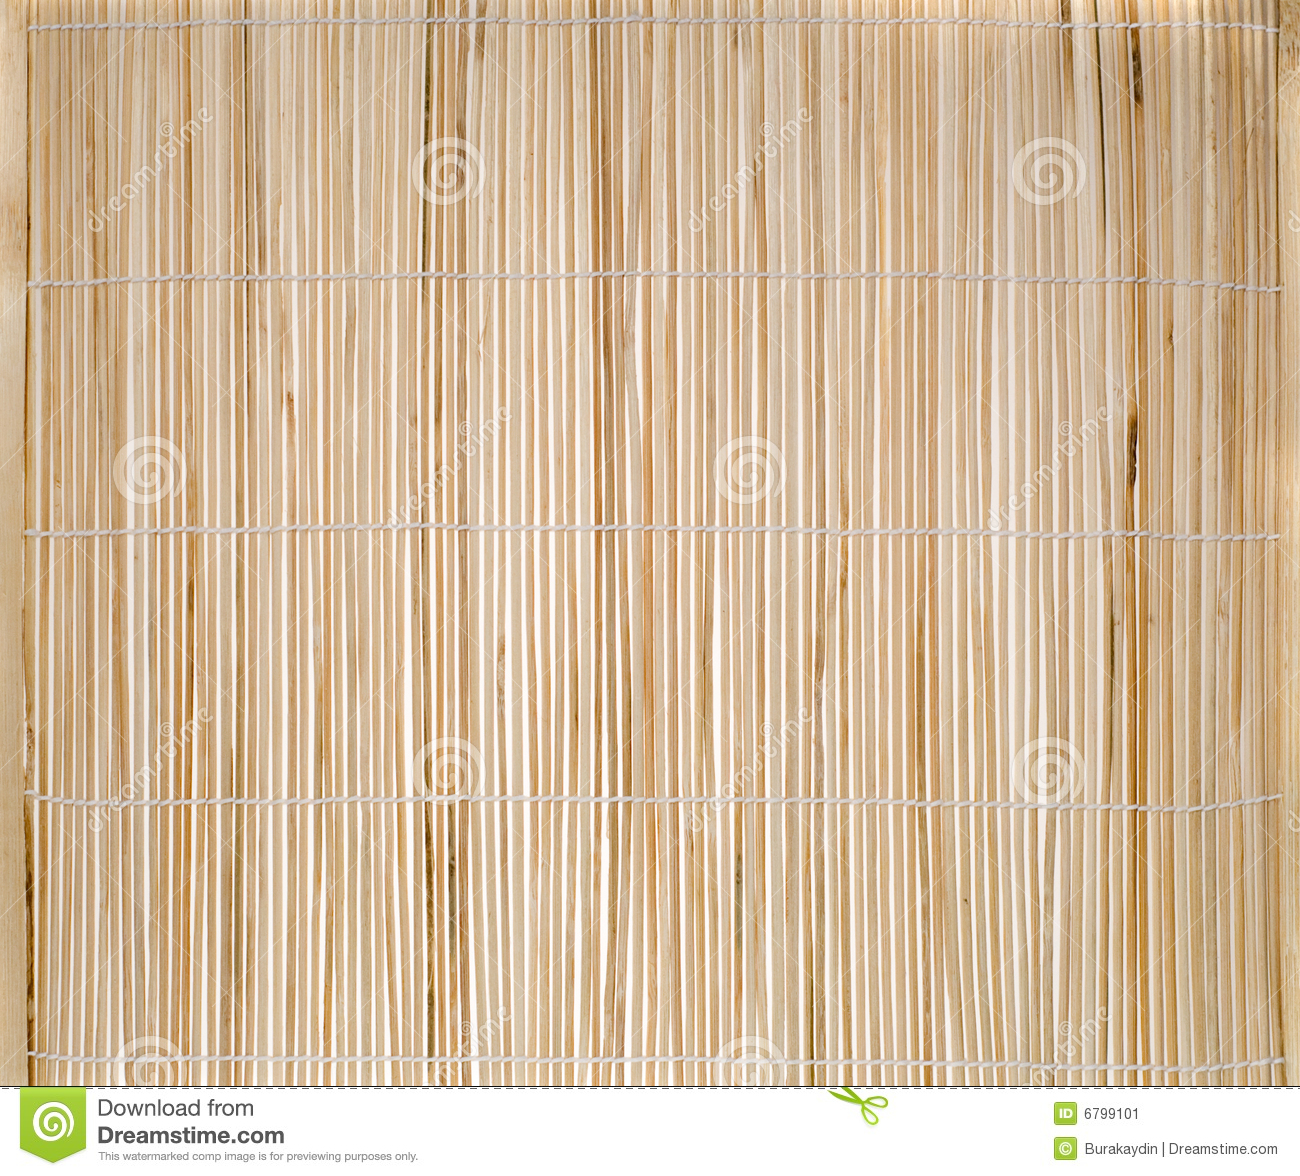 More similar stock images of ` Bamboo tile `